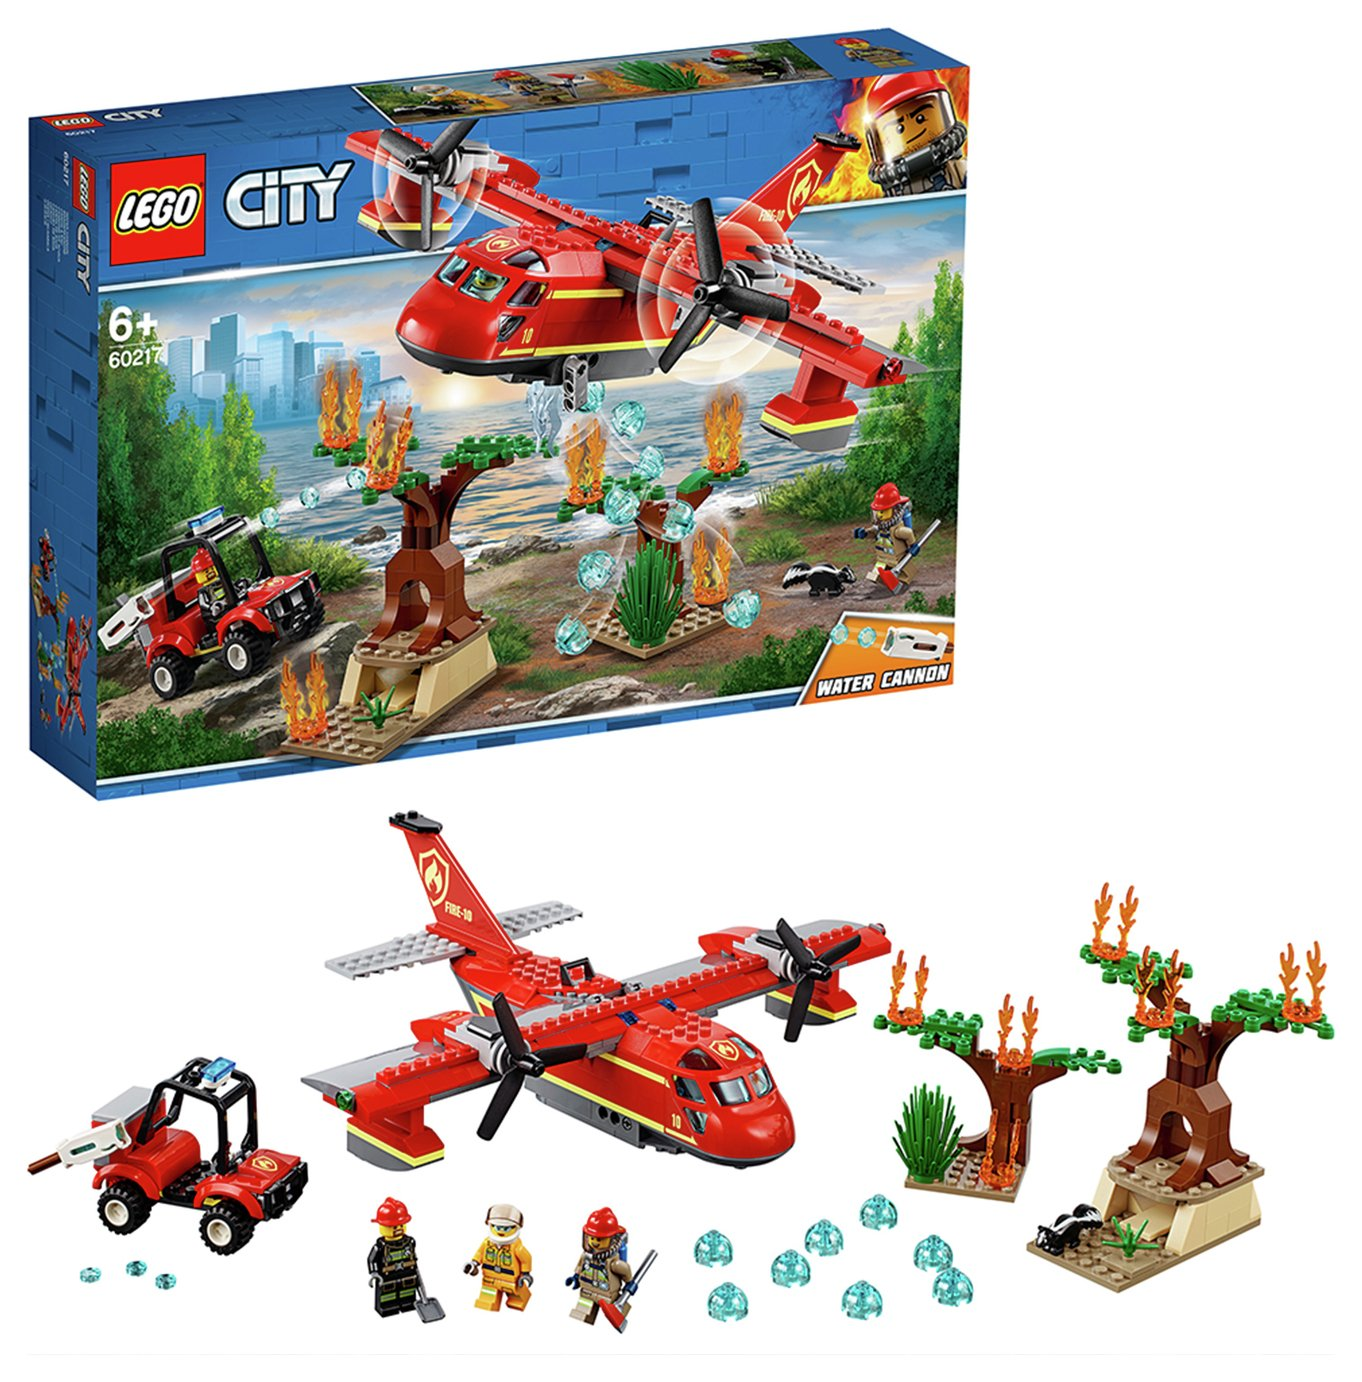 LEGO City Fire Toy Plane and Buggy Playset - 60217